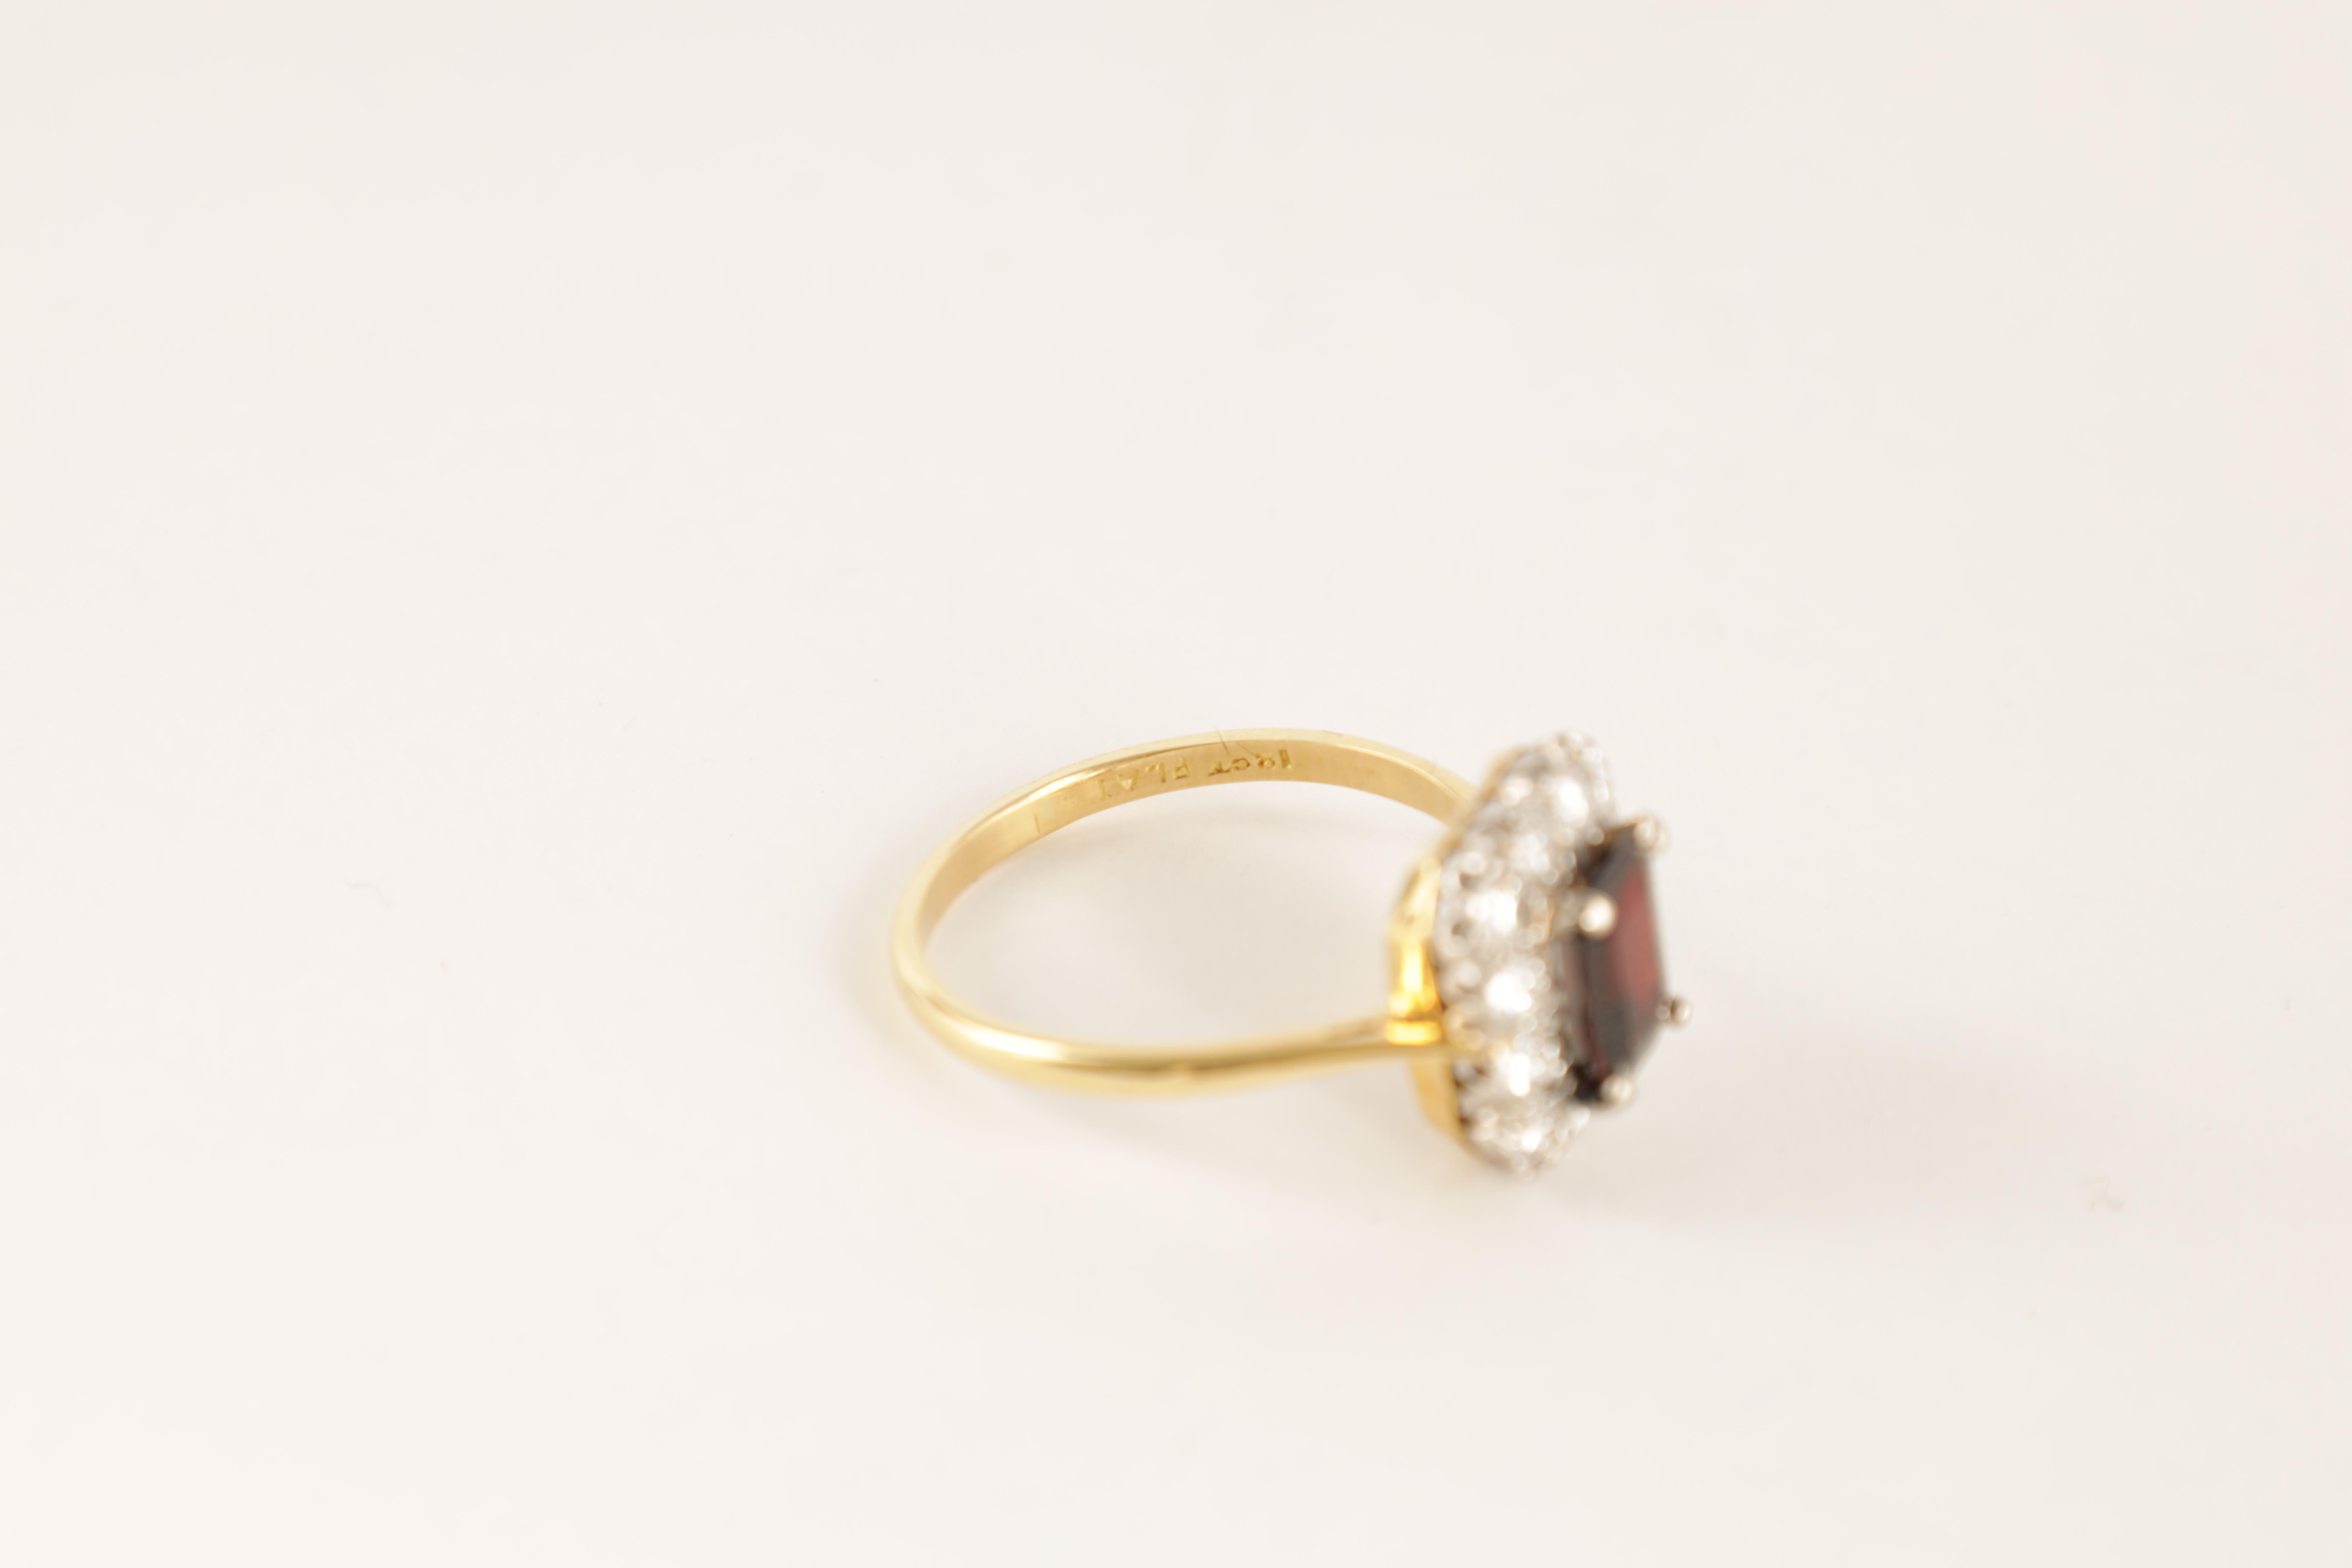 A LADIES 18CT GOLD AND PLATINUM RUBY AND DIAMOND RING with emerald cut ruby surrounded by 12 - Image 3 of 4